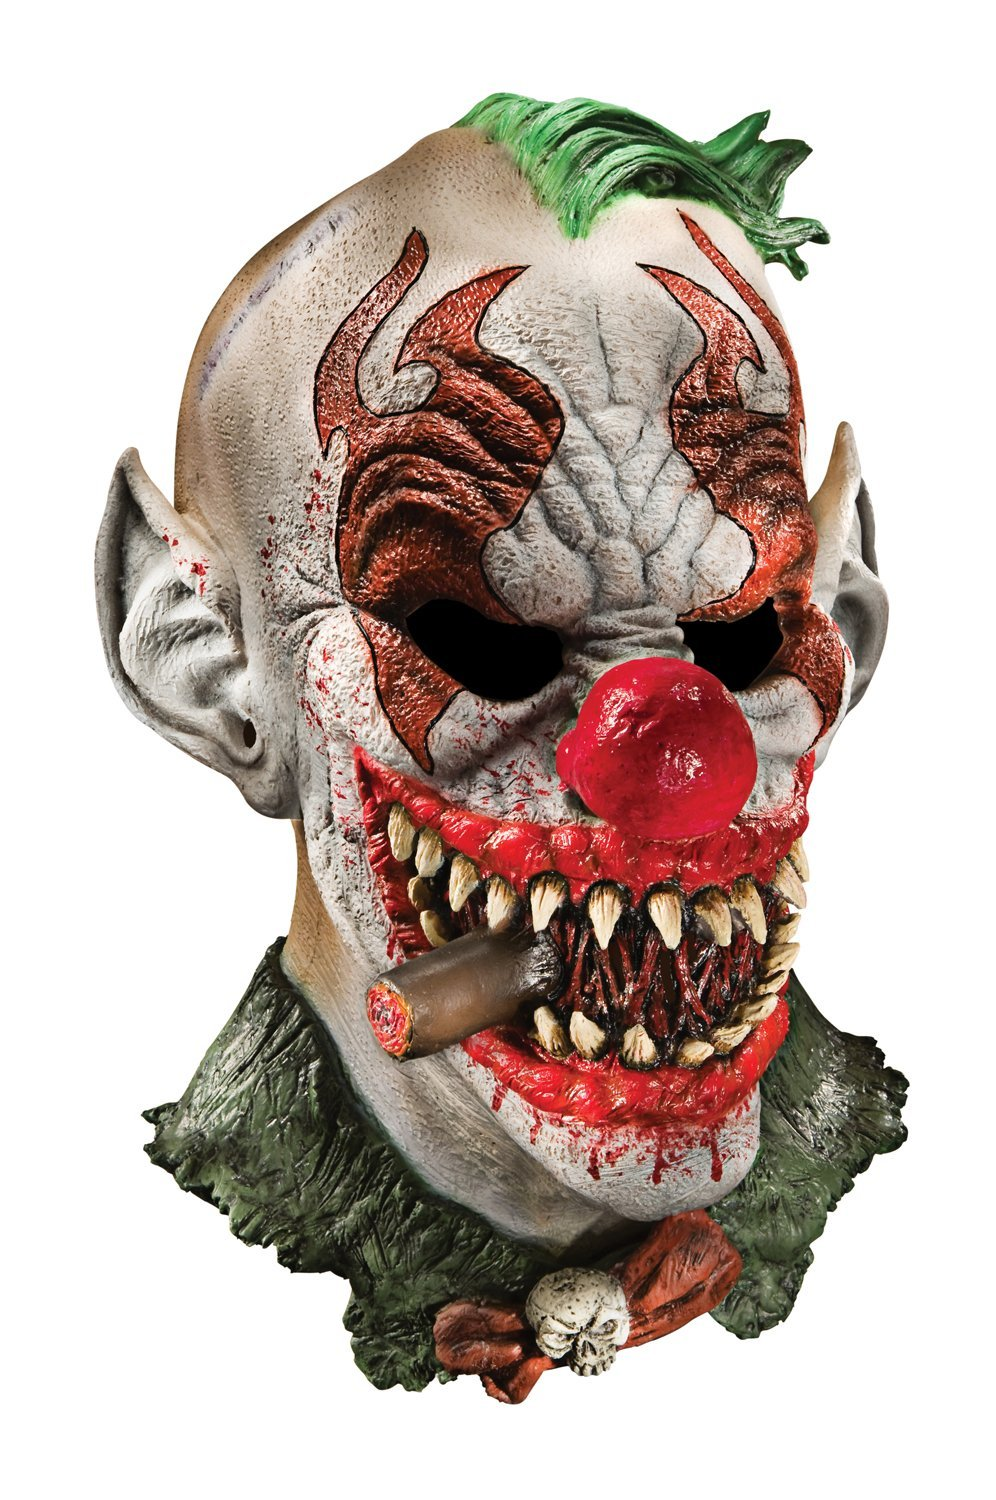 Foam Latex Mask, Deluxe Fonzo The Clown-Adult: Childrens Costume Masks